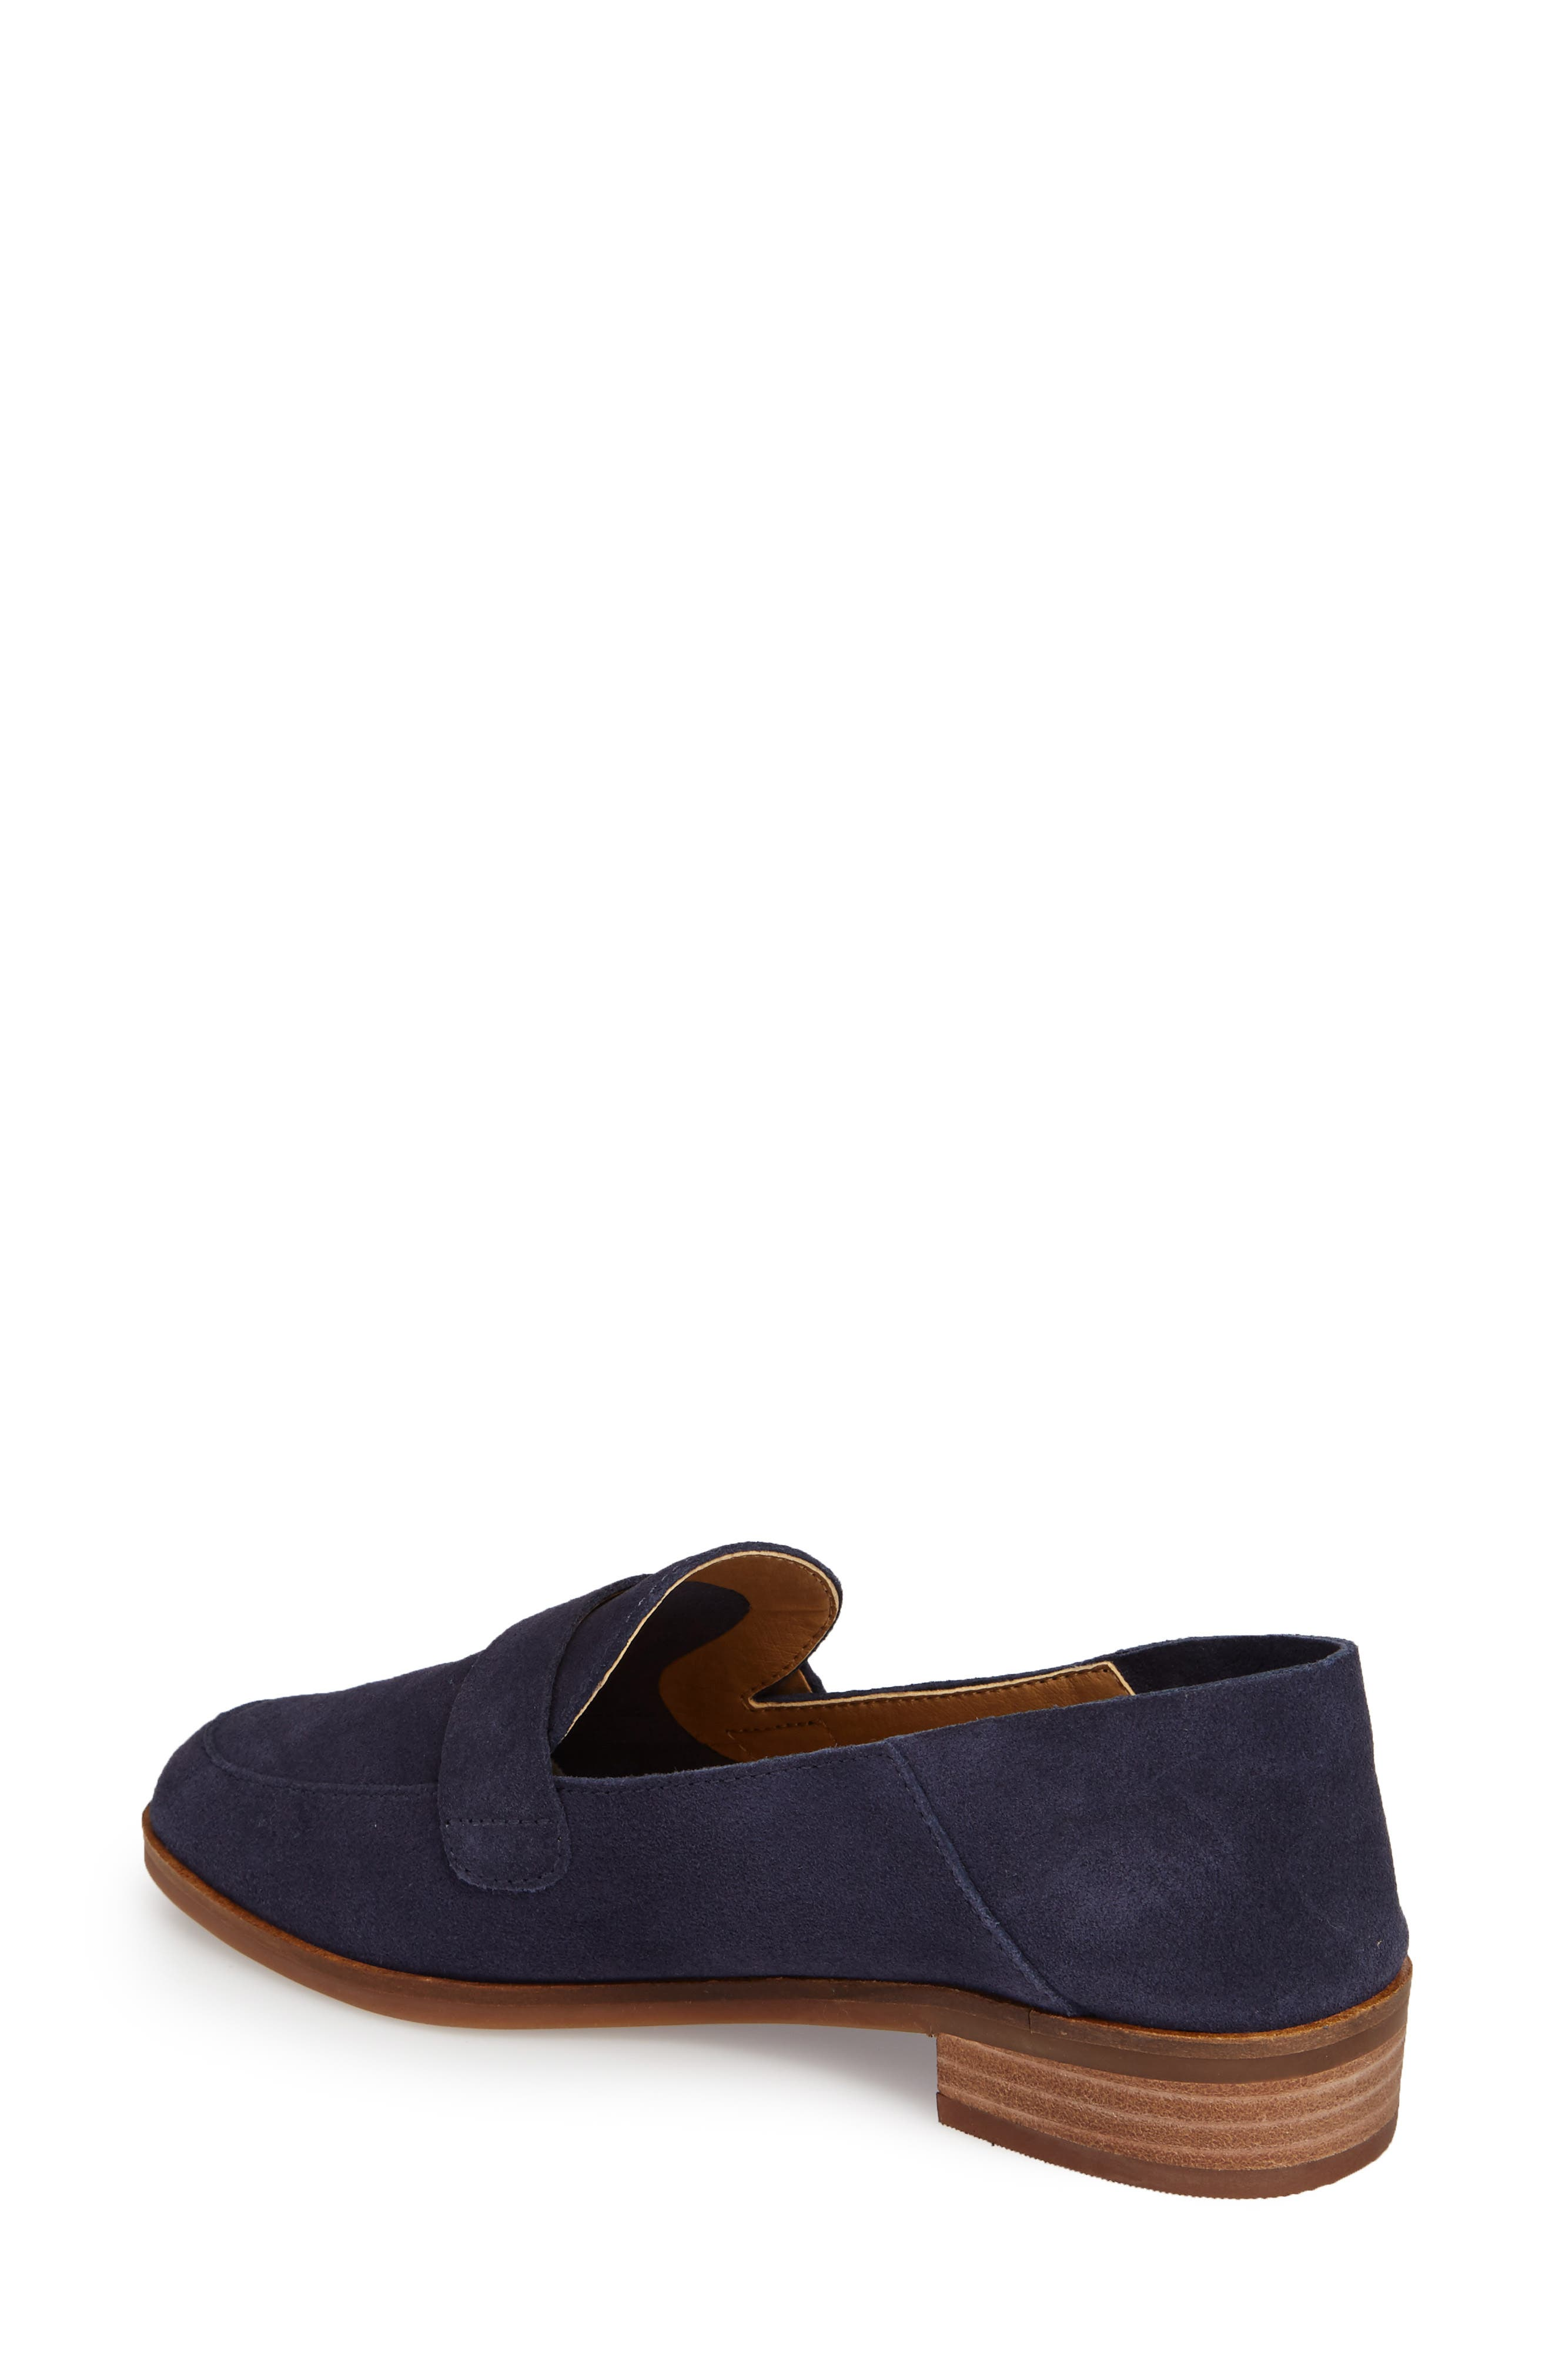 Chennie Loafer,                             Alternate thumbnail 7, color,